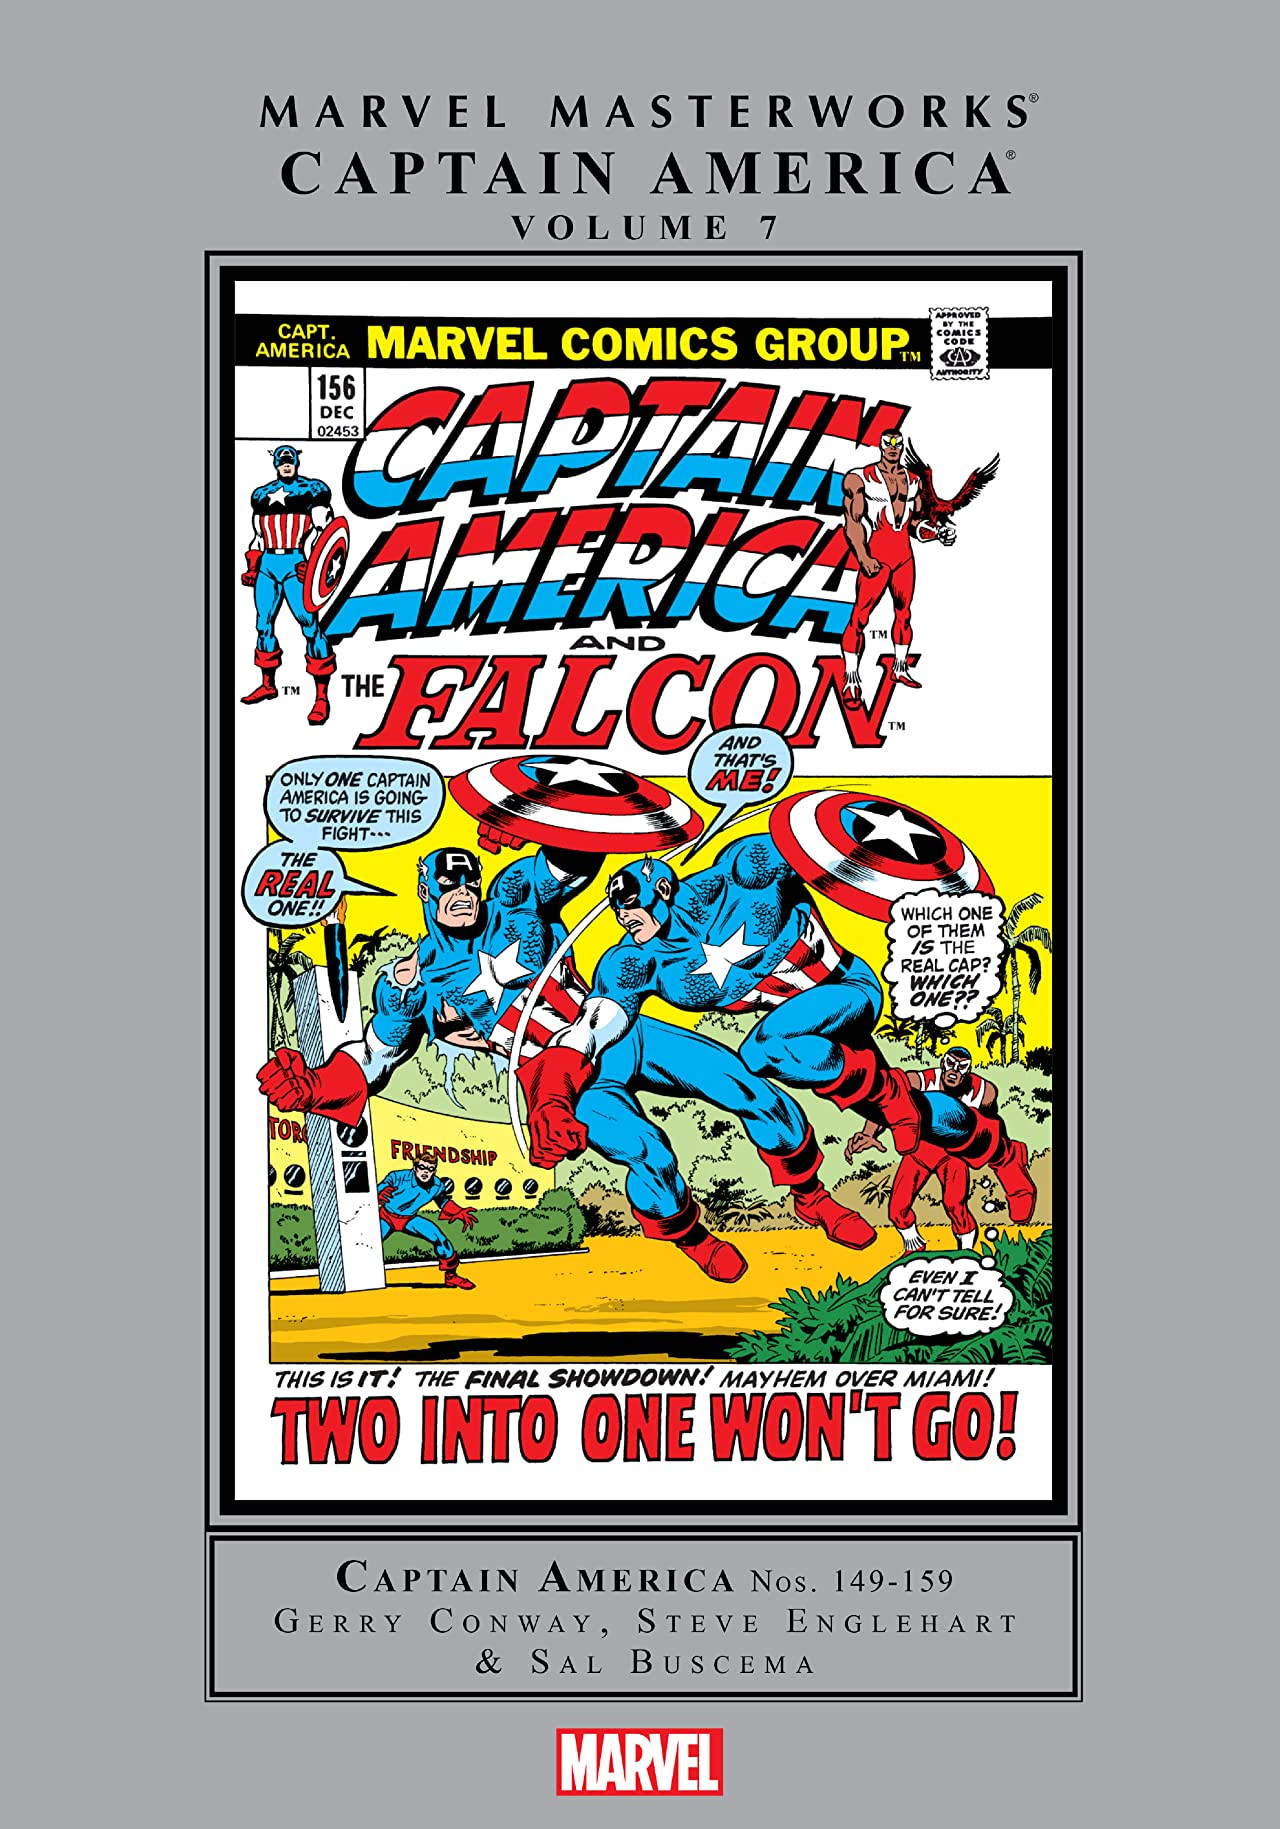 Marvel Masterworks: Captain America Vol 1 7